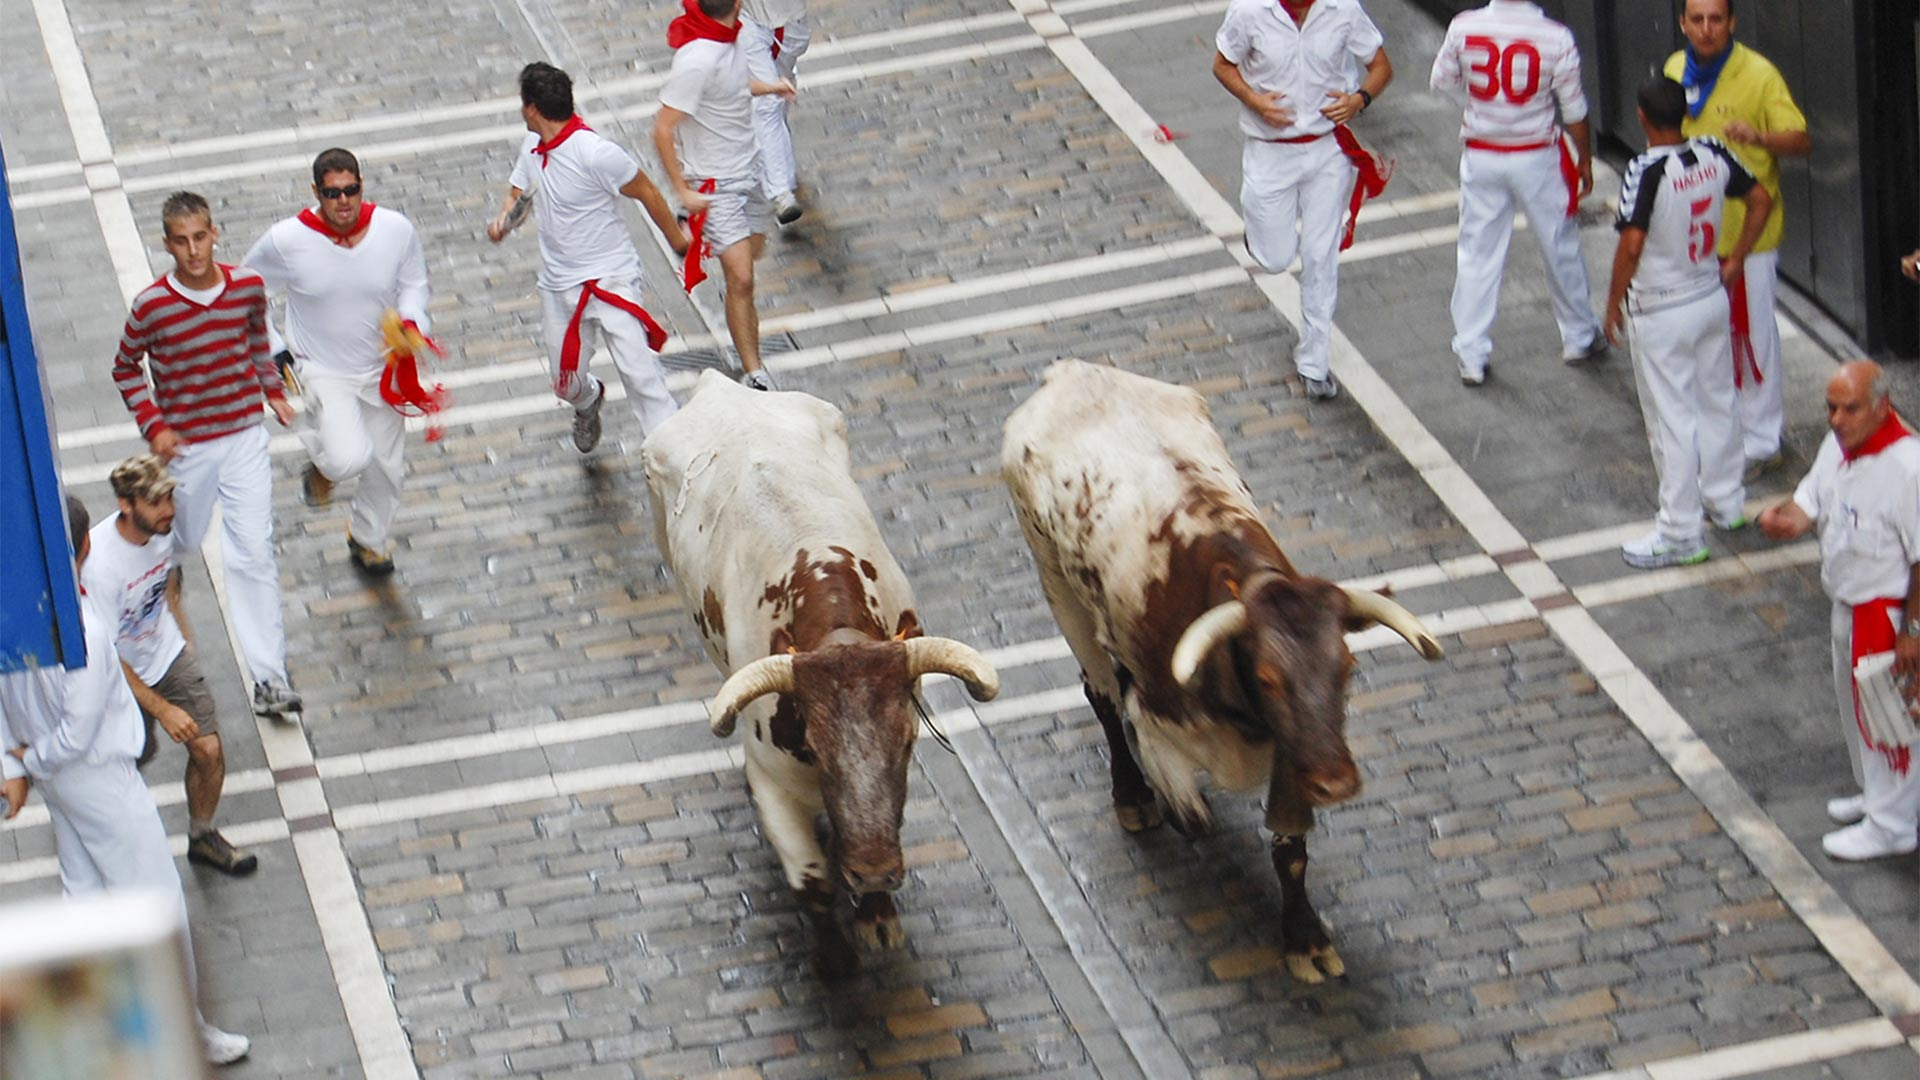 The Running of the Bulls in Pamplona, Spain.